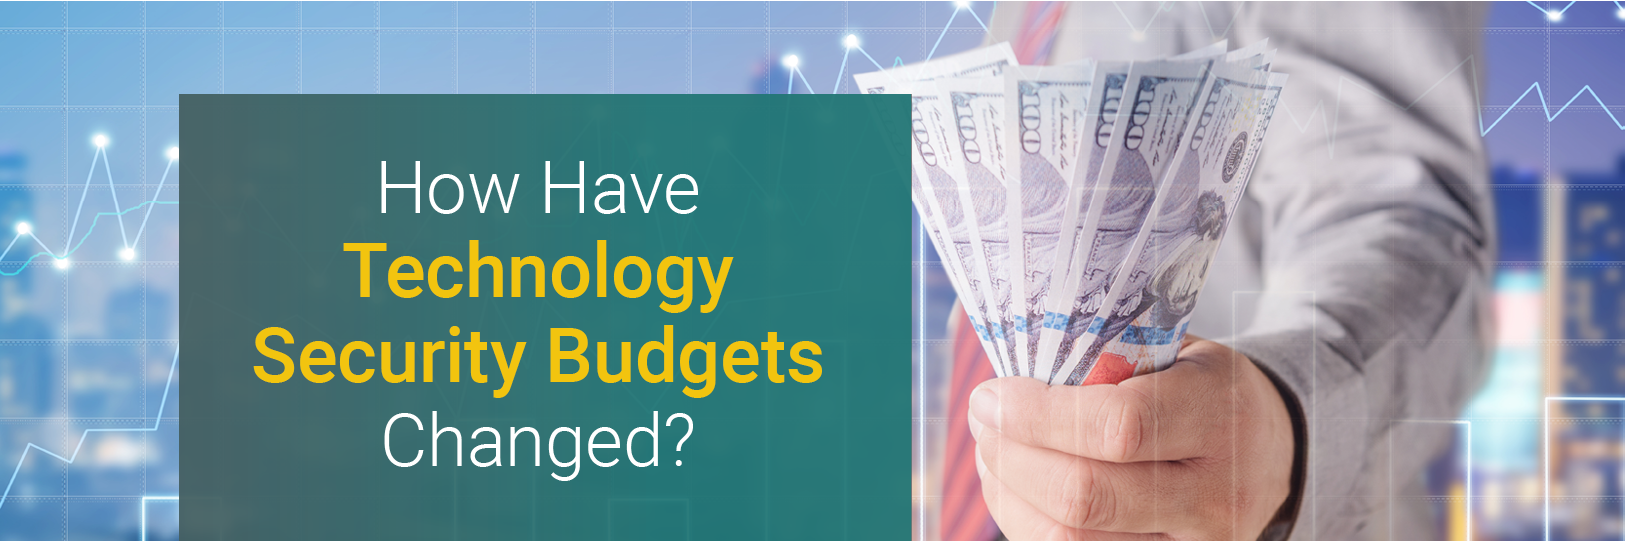 How Have Technology Security Budgets Changed?